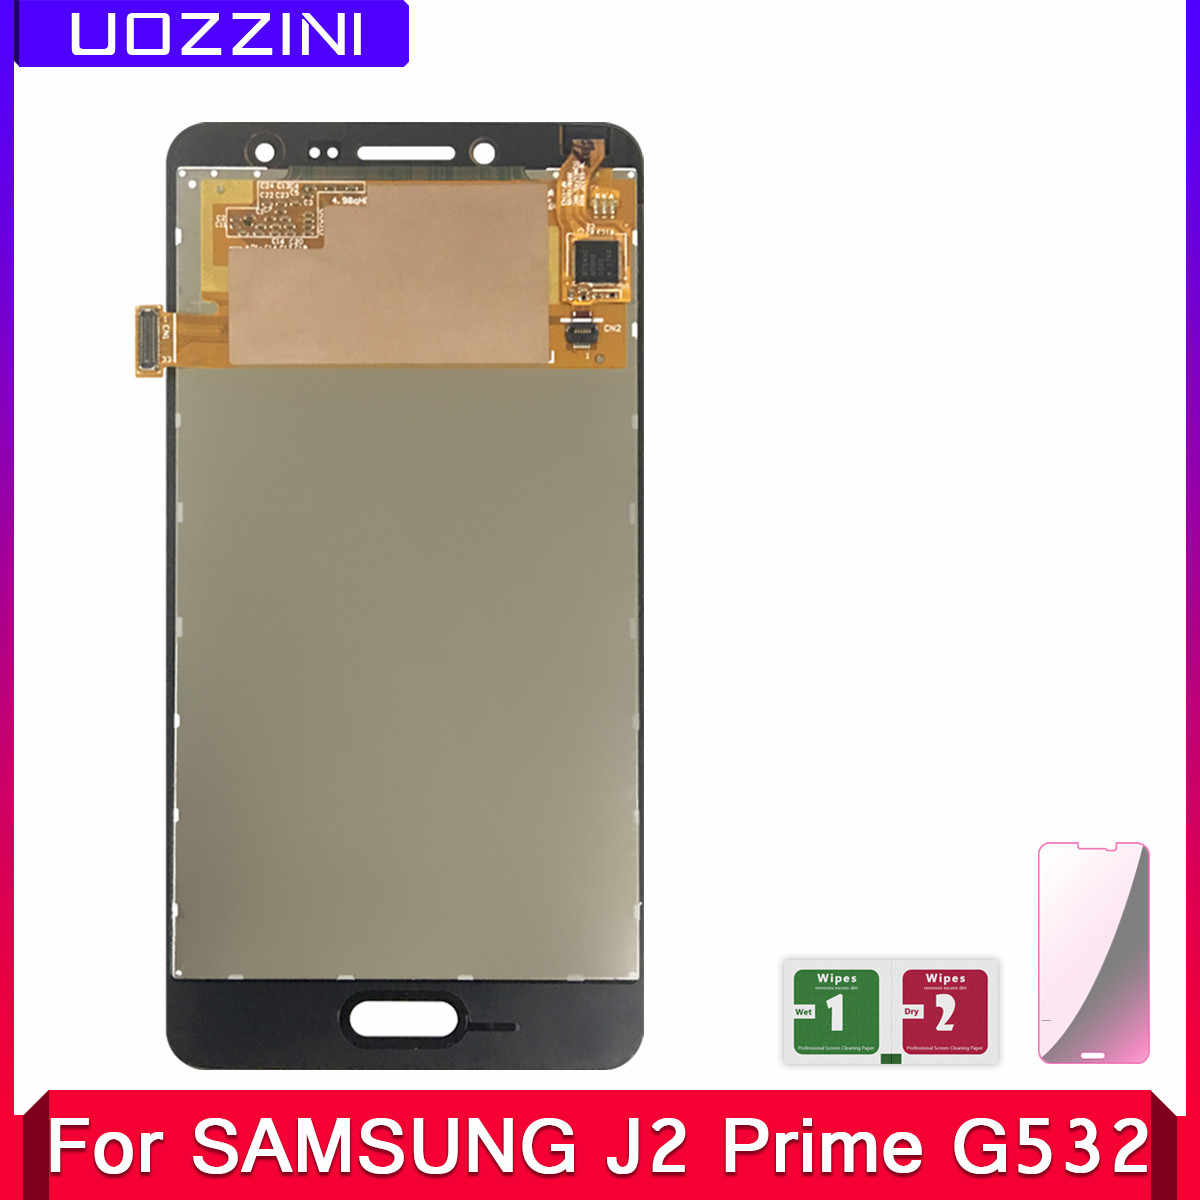 2 Pcs Lcds J2 Prime G532 LCD Display Touch Screen Digitizer Assembly LCD Display For Samsung J2 Prime G532 G532F G532M